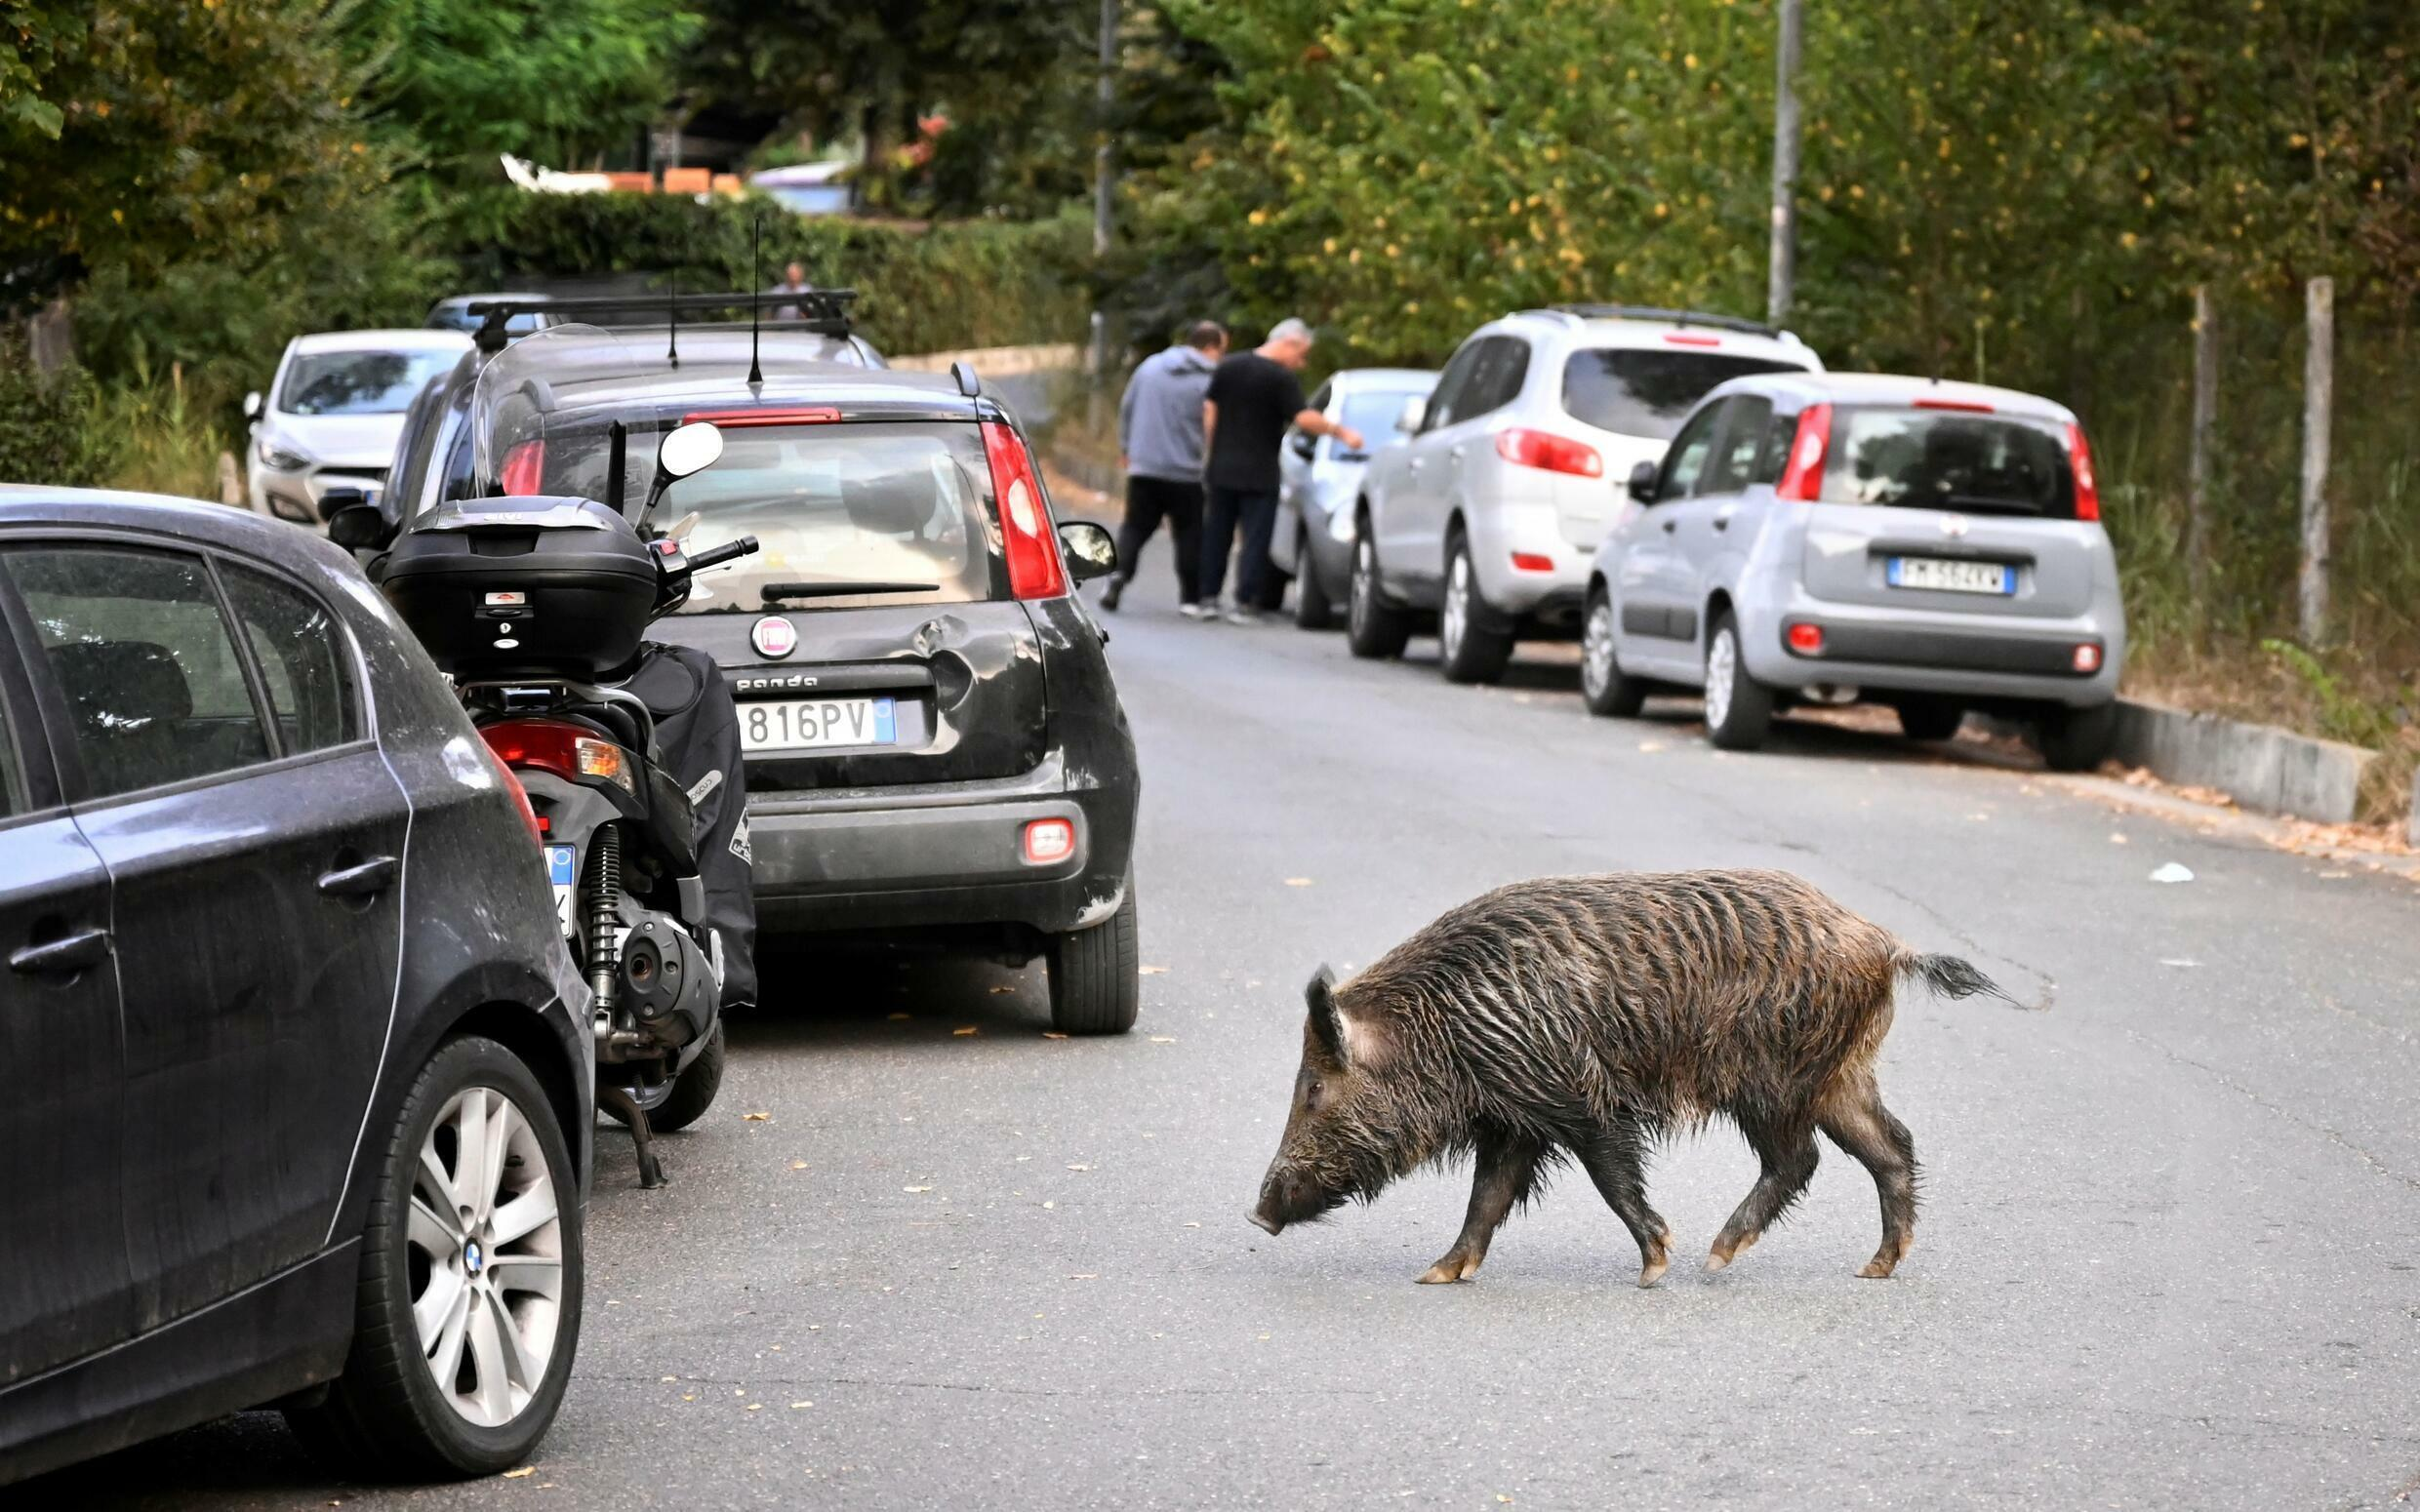 Wild boars overshadow mayoral race as Rome demands clean-up - France 24